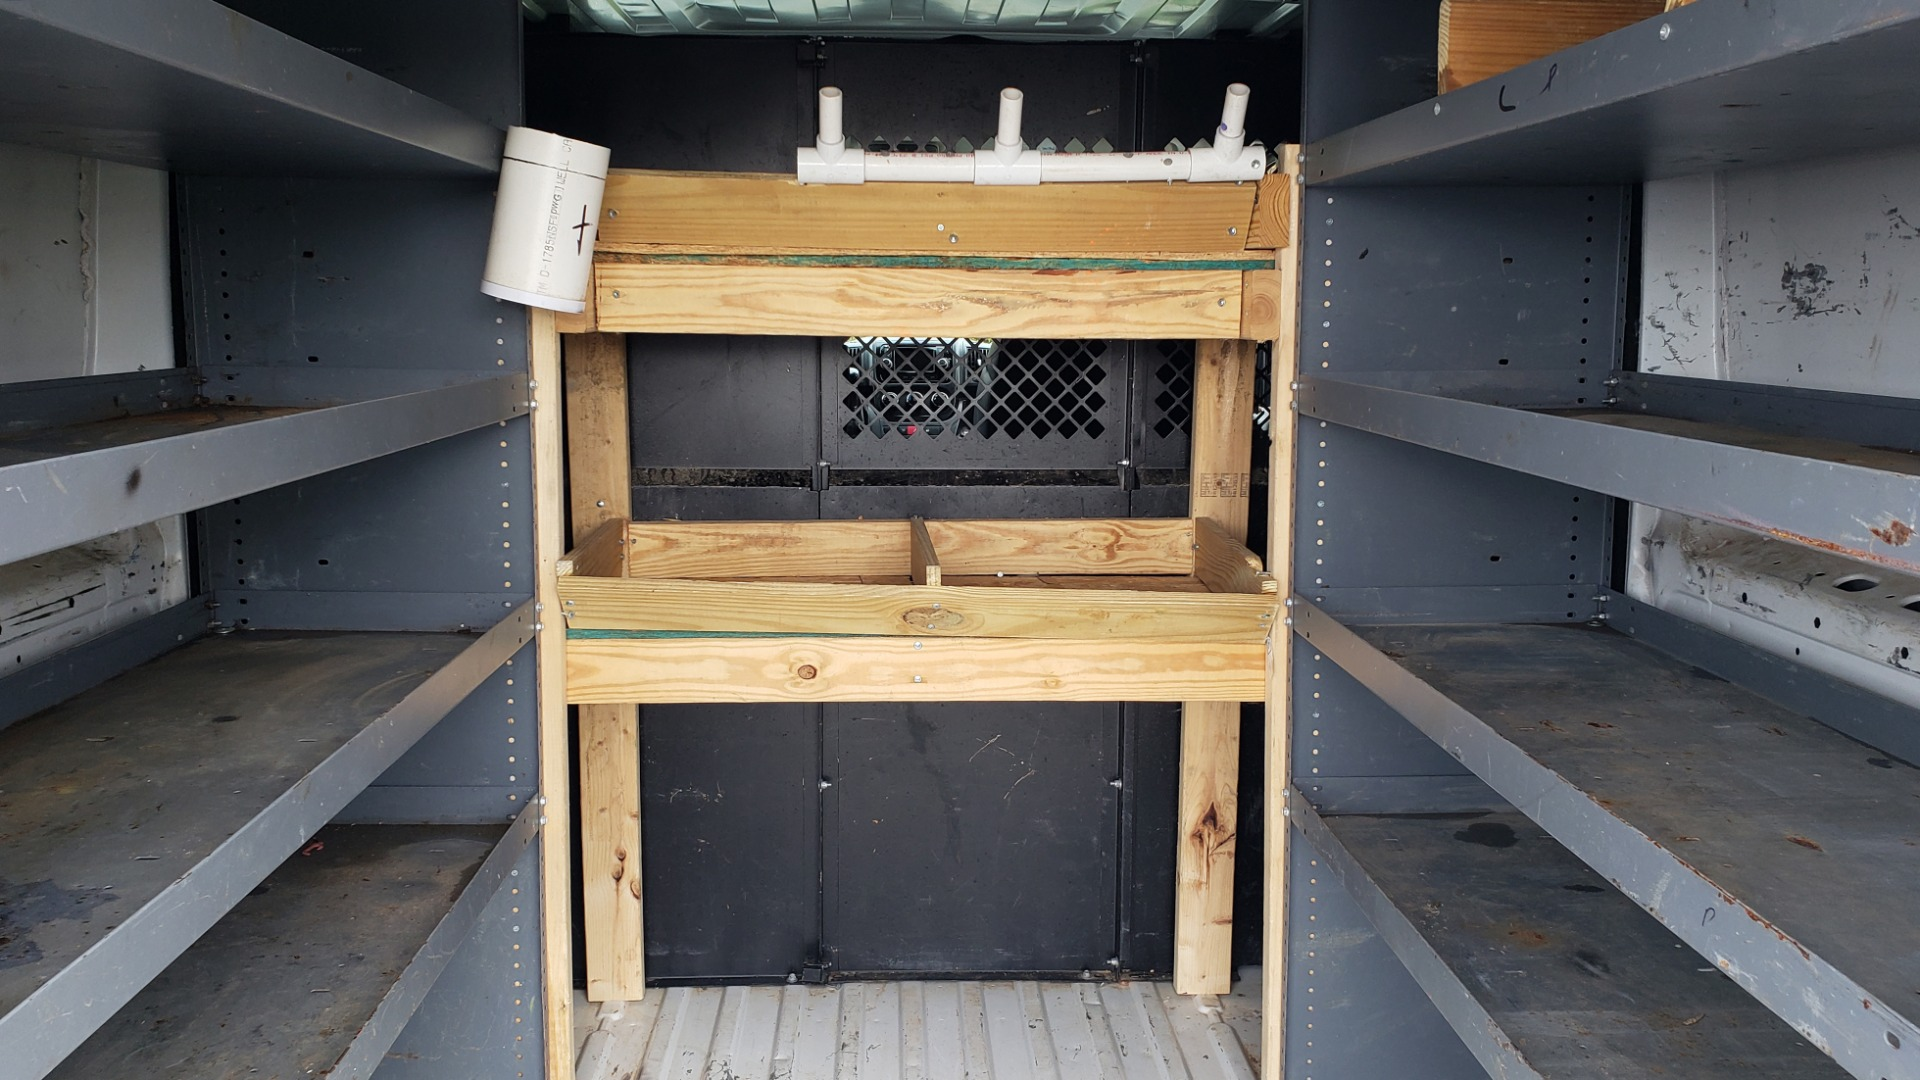 Used 2015 Ram PROMASTER CARGO VAN 136-INCH WB / LOW ROOF / LADDER RACK / INSIDE RACKS for sale $16,995 at Formula Imports in Charlotte NC 28227 58